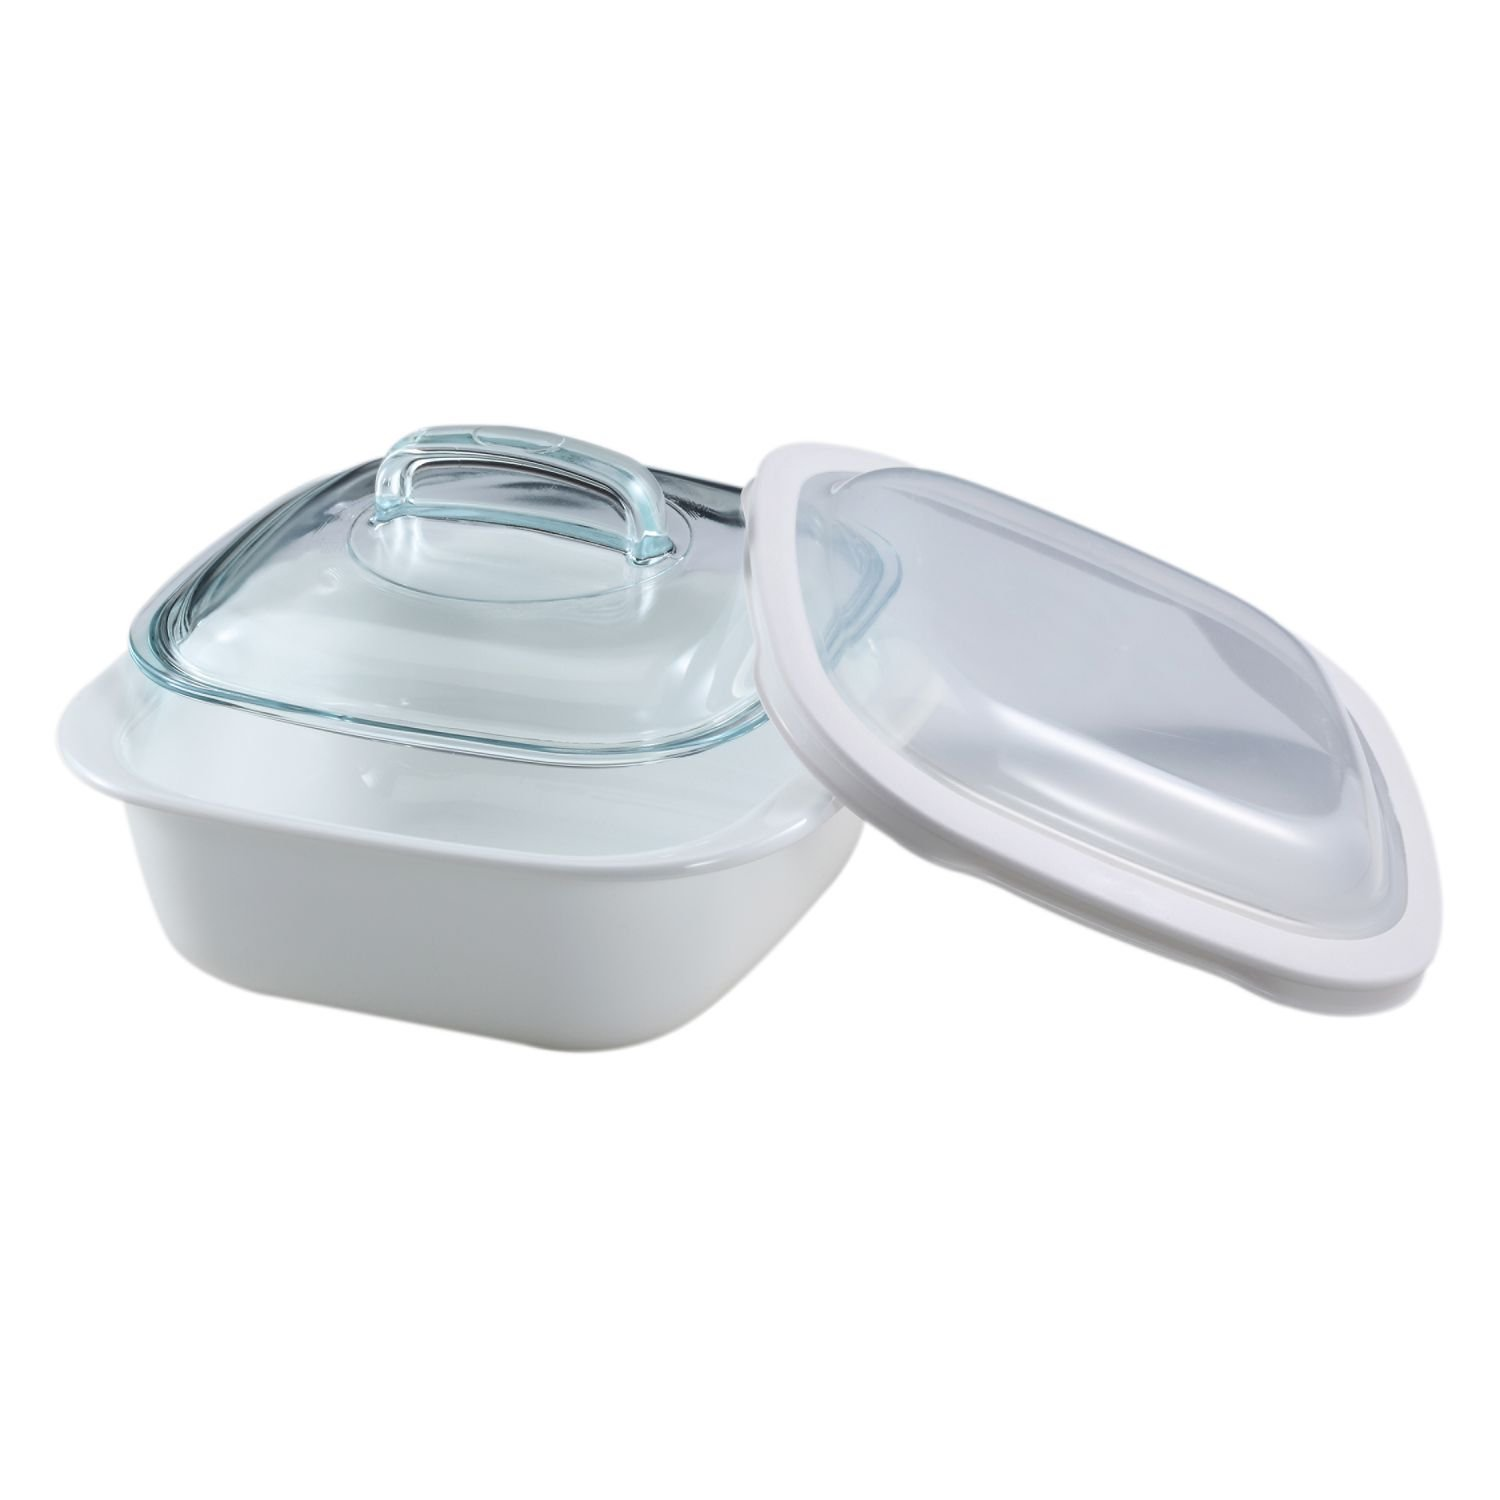 Corelle Bake, Serve, Store 1.5-qt Square Bakeware Dish w/Glass & Plastic Covers 1107597